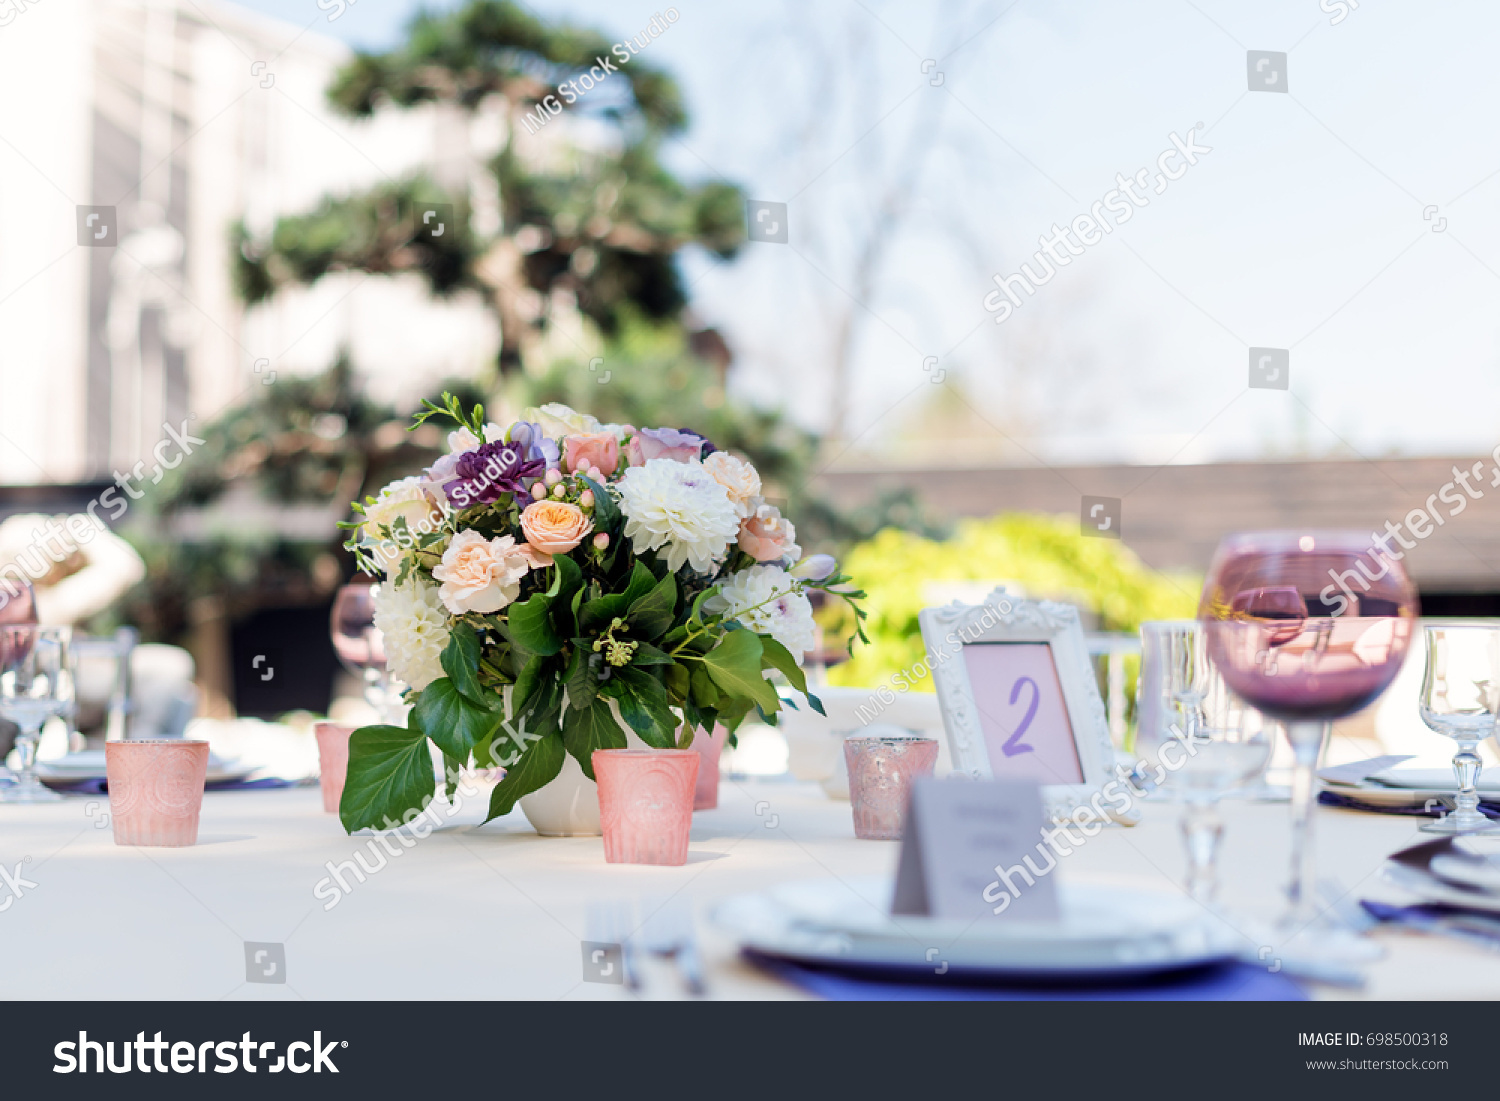 Flower table decorations - Flower Table Decorations For Holidays And Wedding Dinner Table Set For Holiday Event